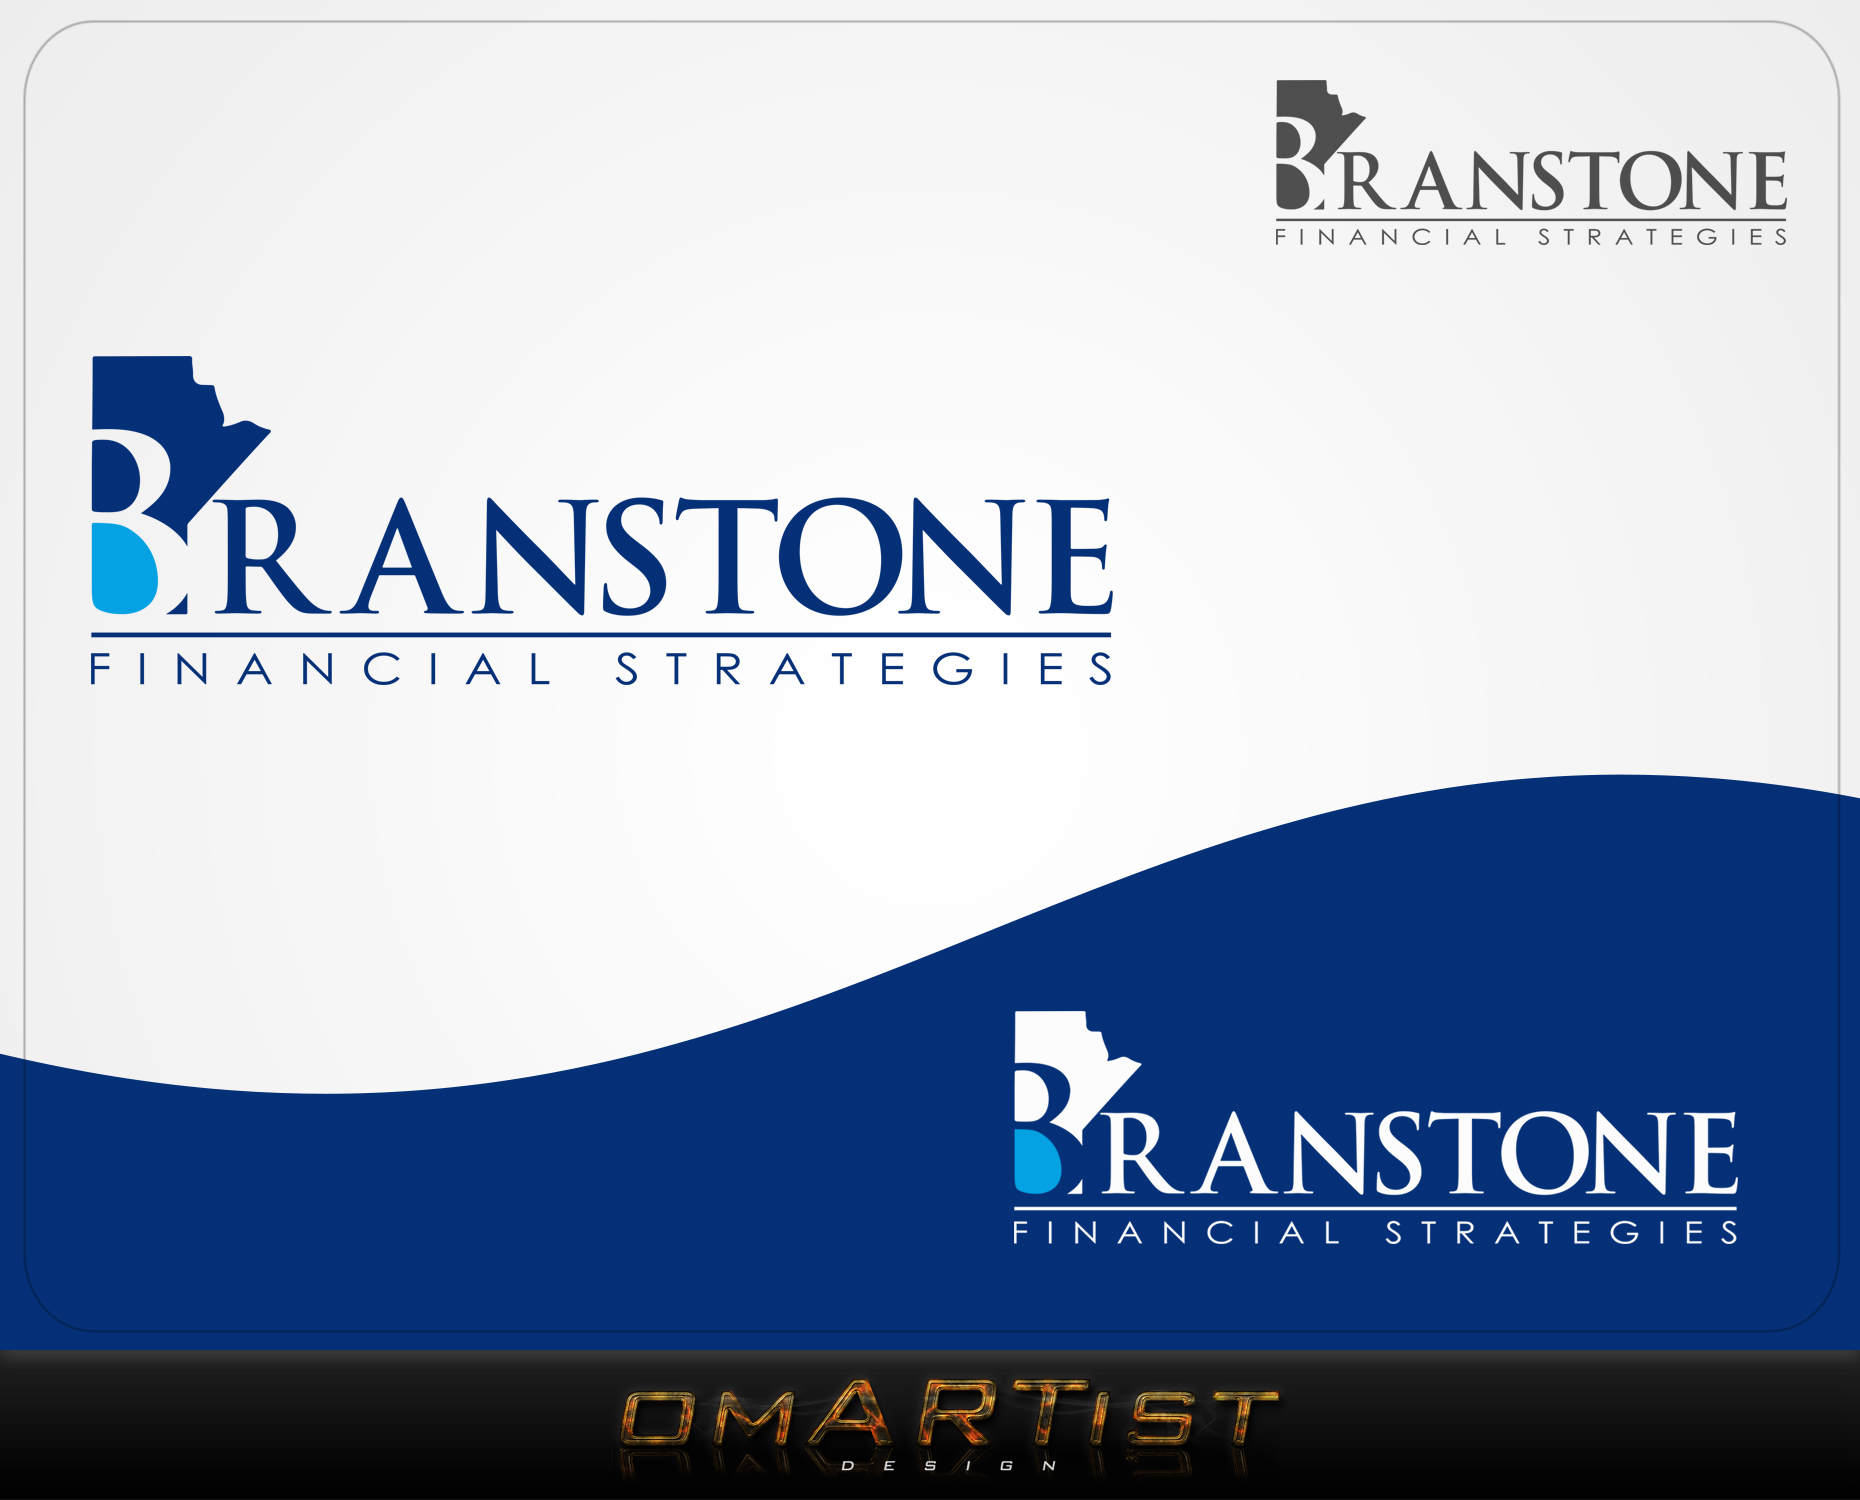 Logo Design by omARTist - Entry No. 69 in the Logo Design Contest Inspiring Logo Design for Branstone Financial Strategies.